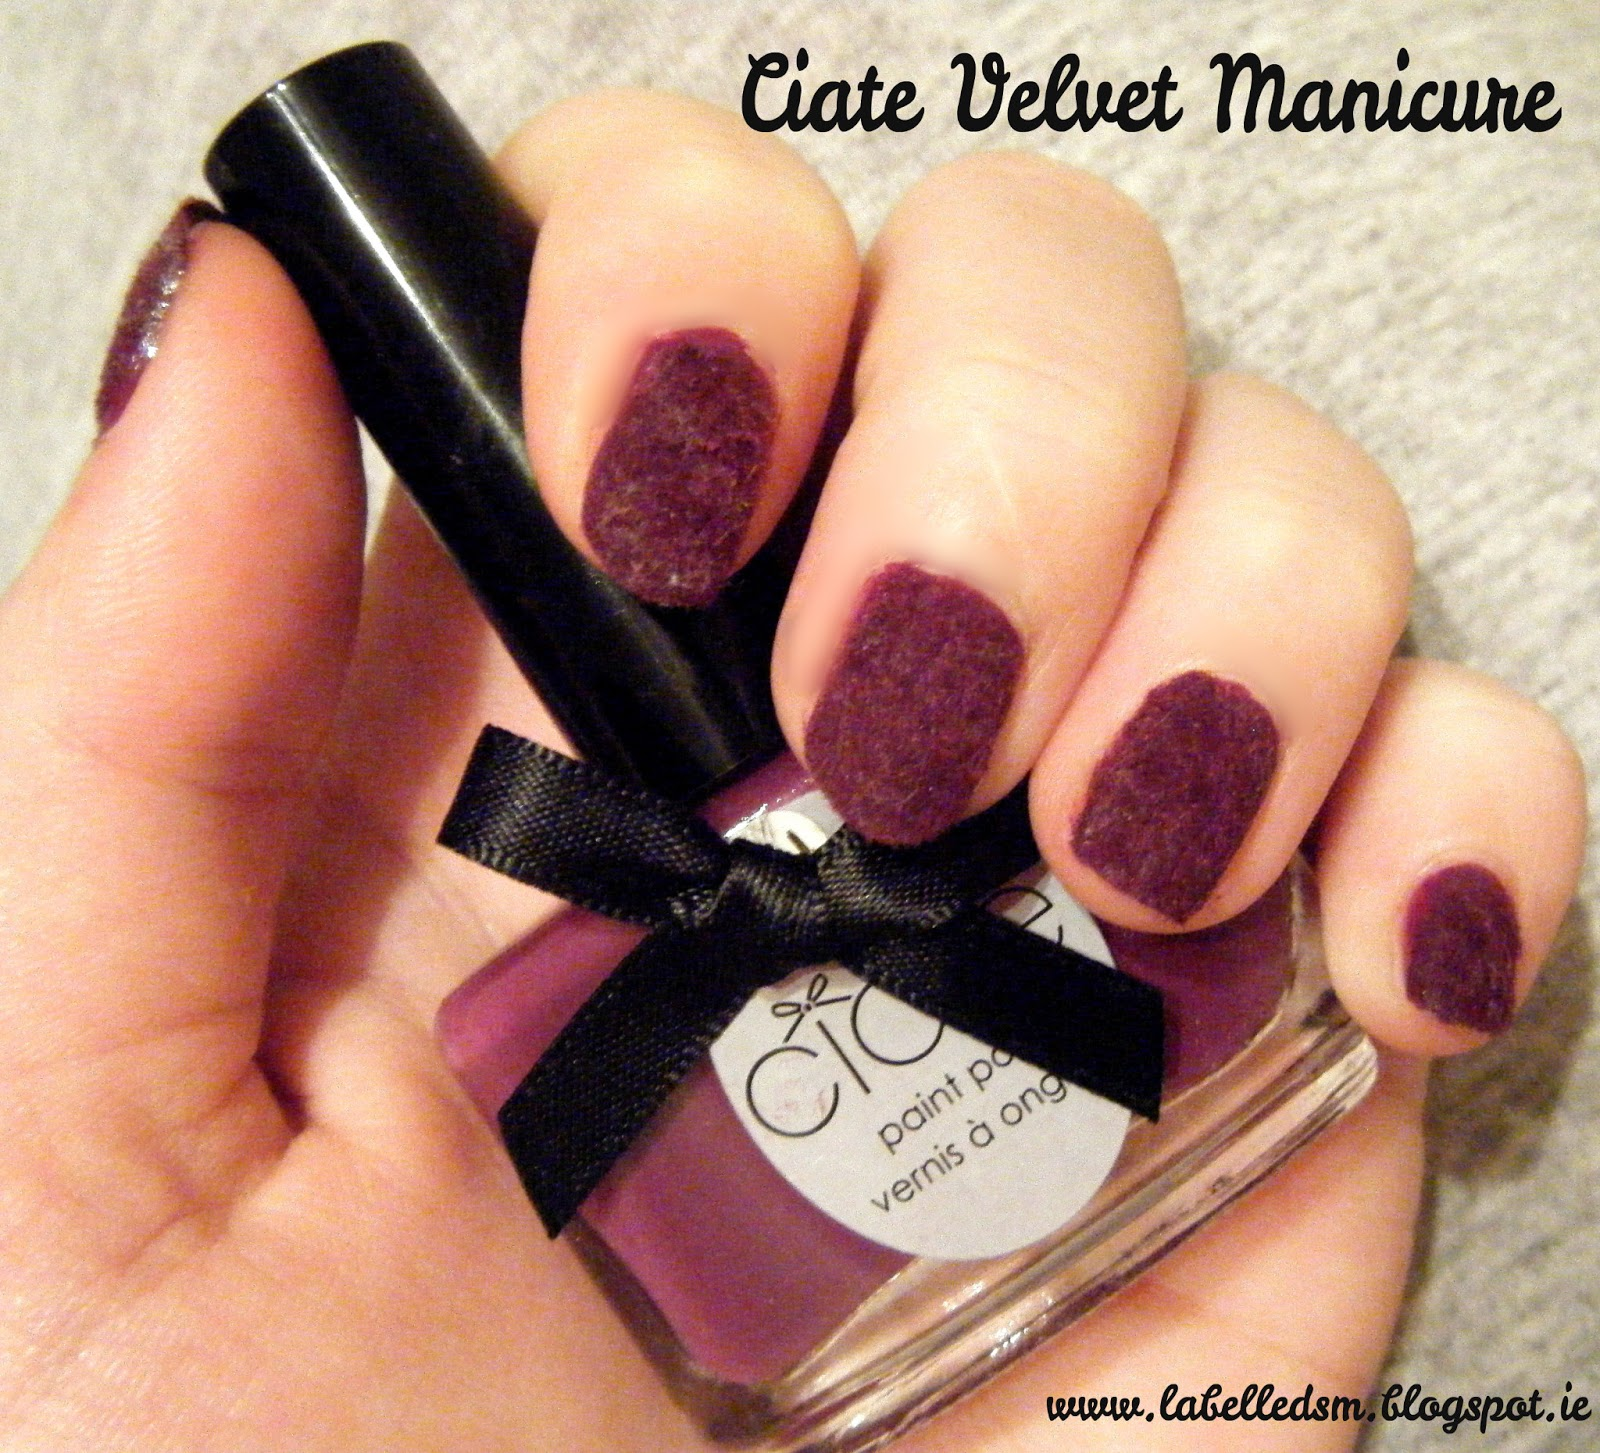 Ciate Nail Polish Remover: Nails Of The Day - Ciaté Velvet Manicure ♥